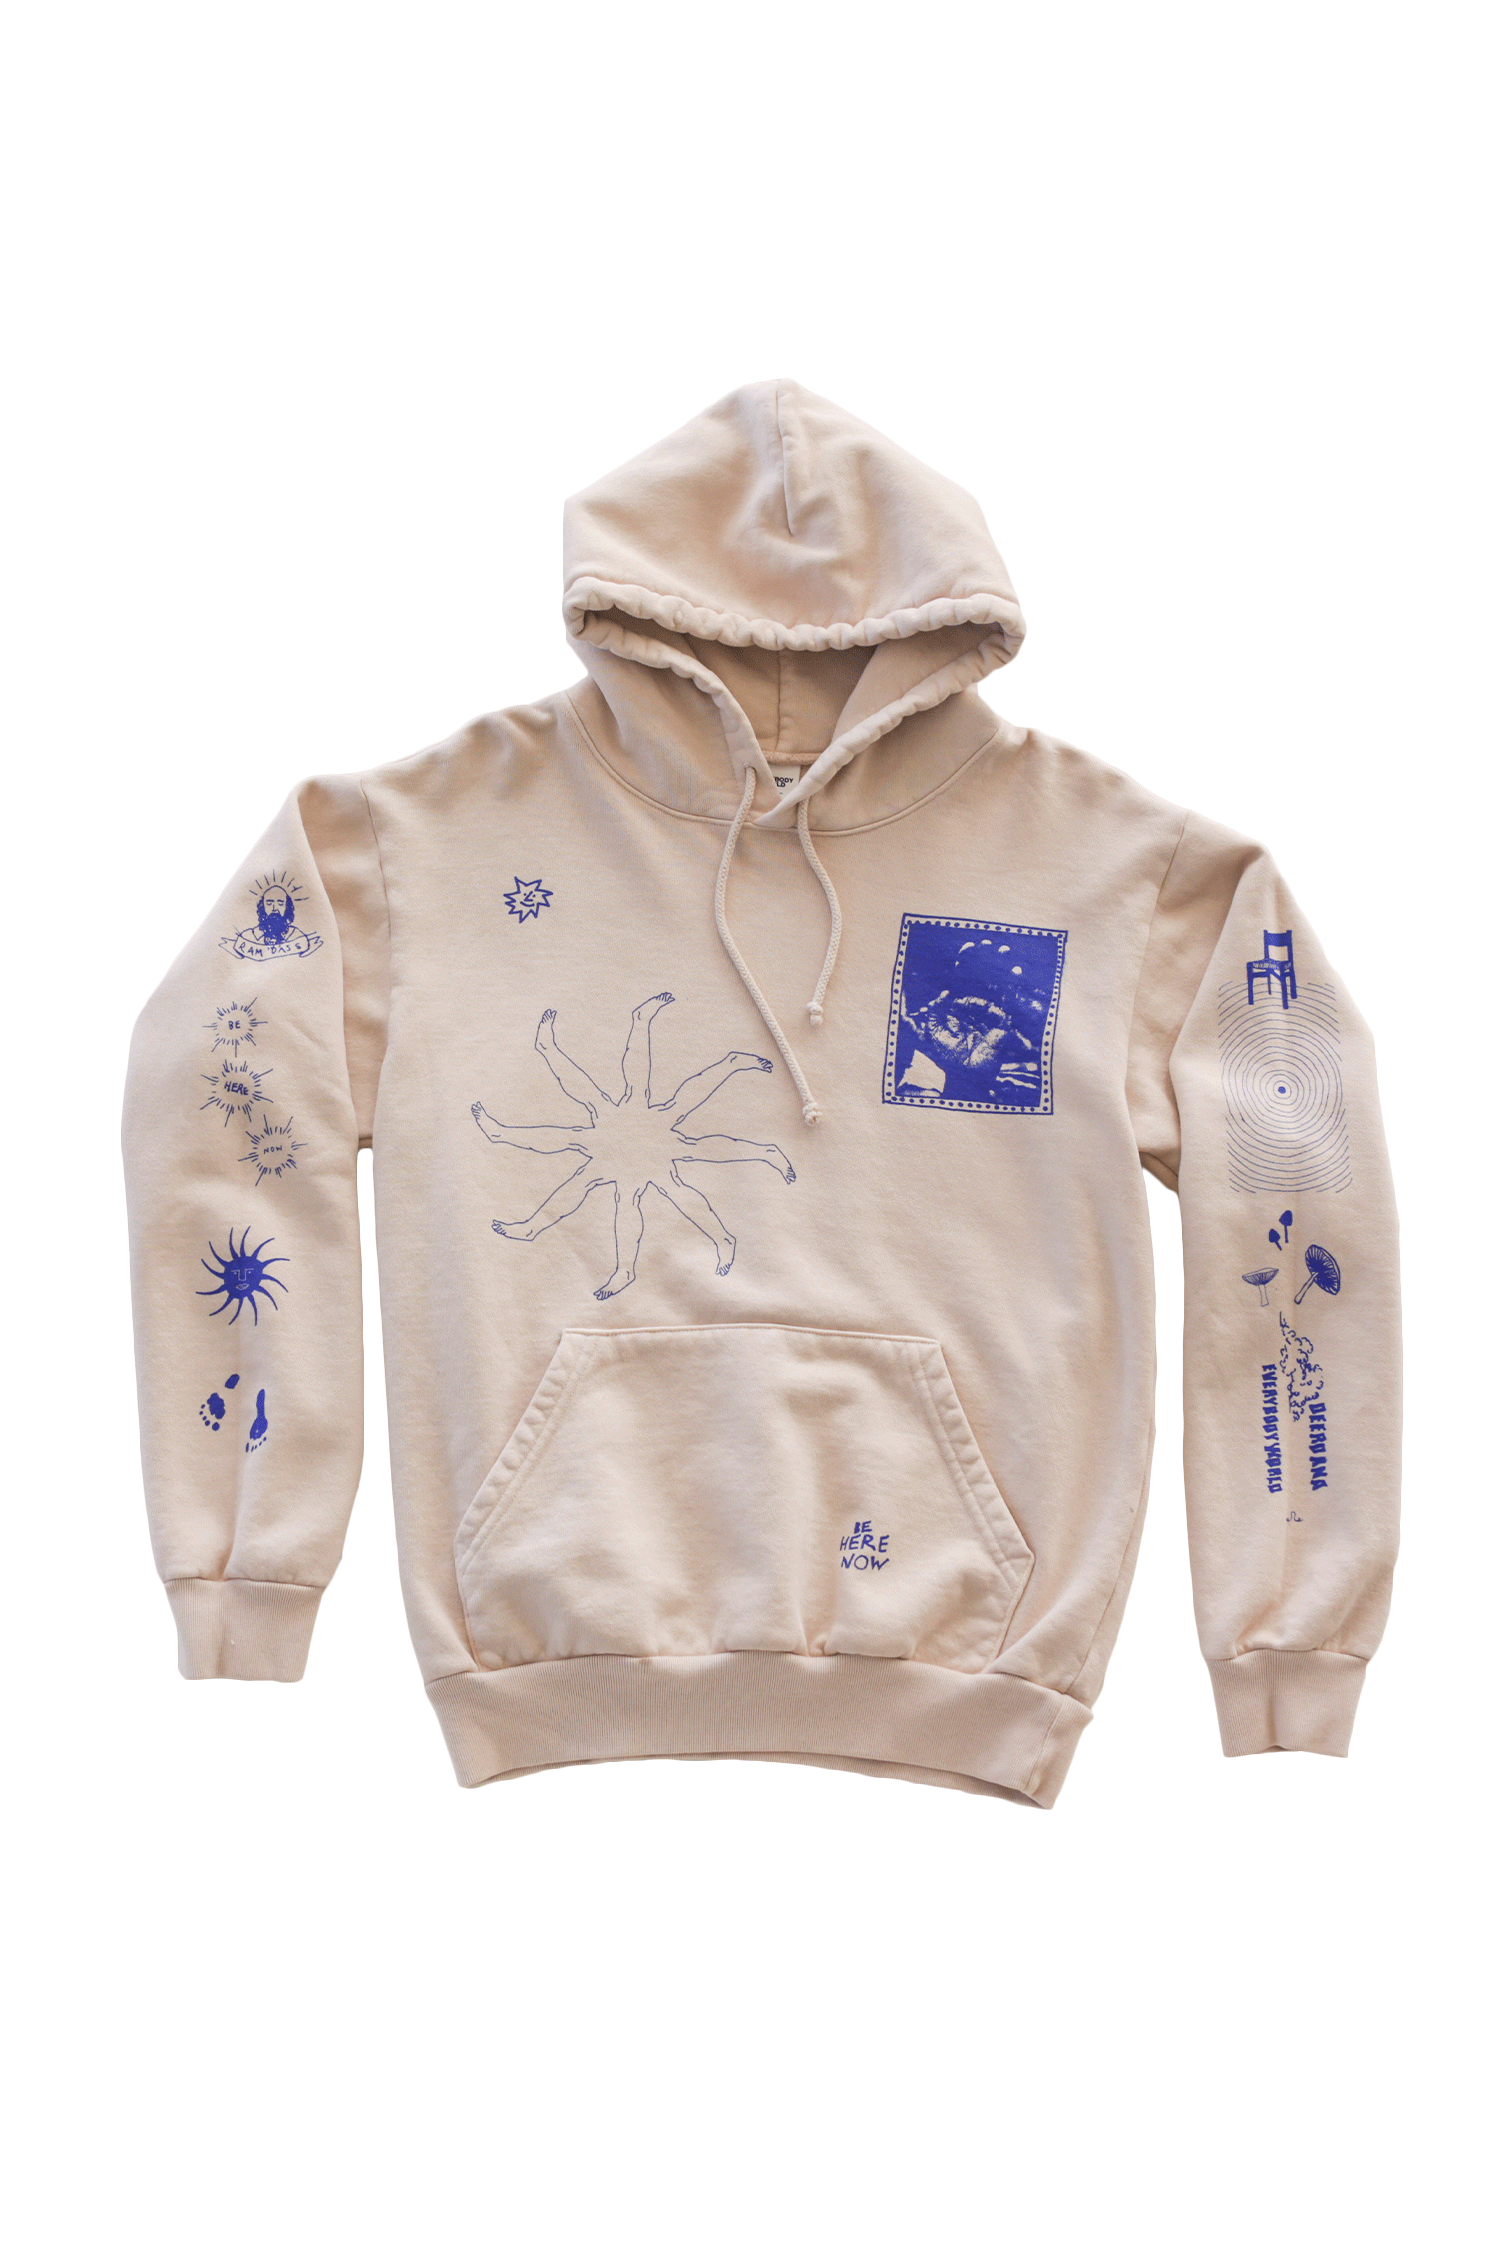 Be Here Now Hoodie - Cream Hoodie